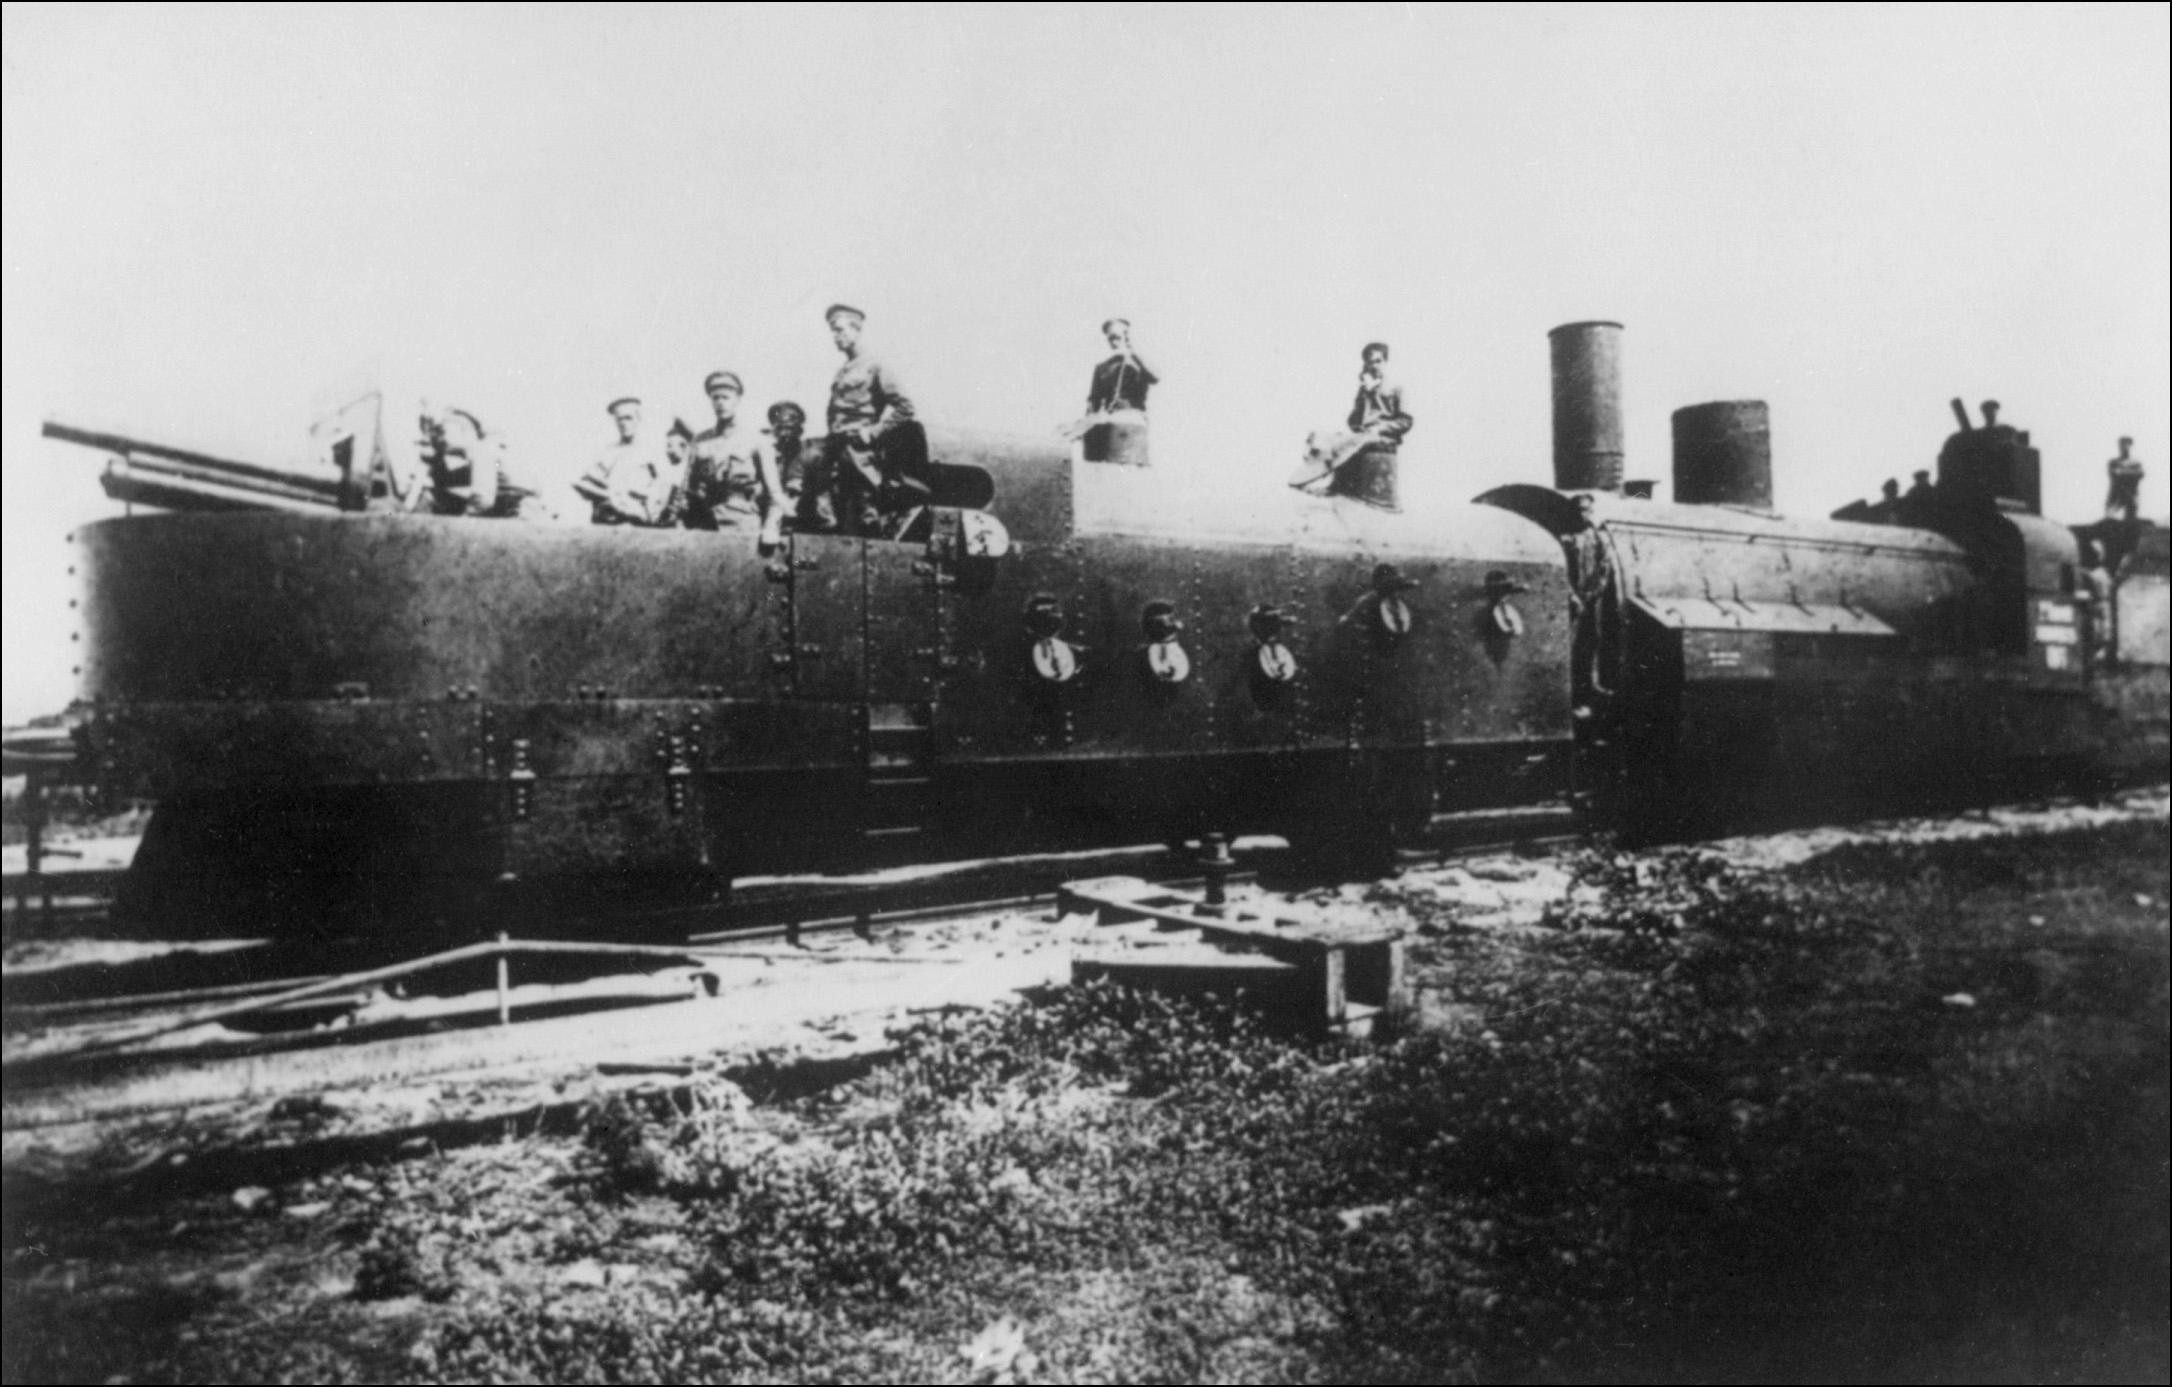 A Russian armored train from 1918